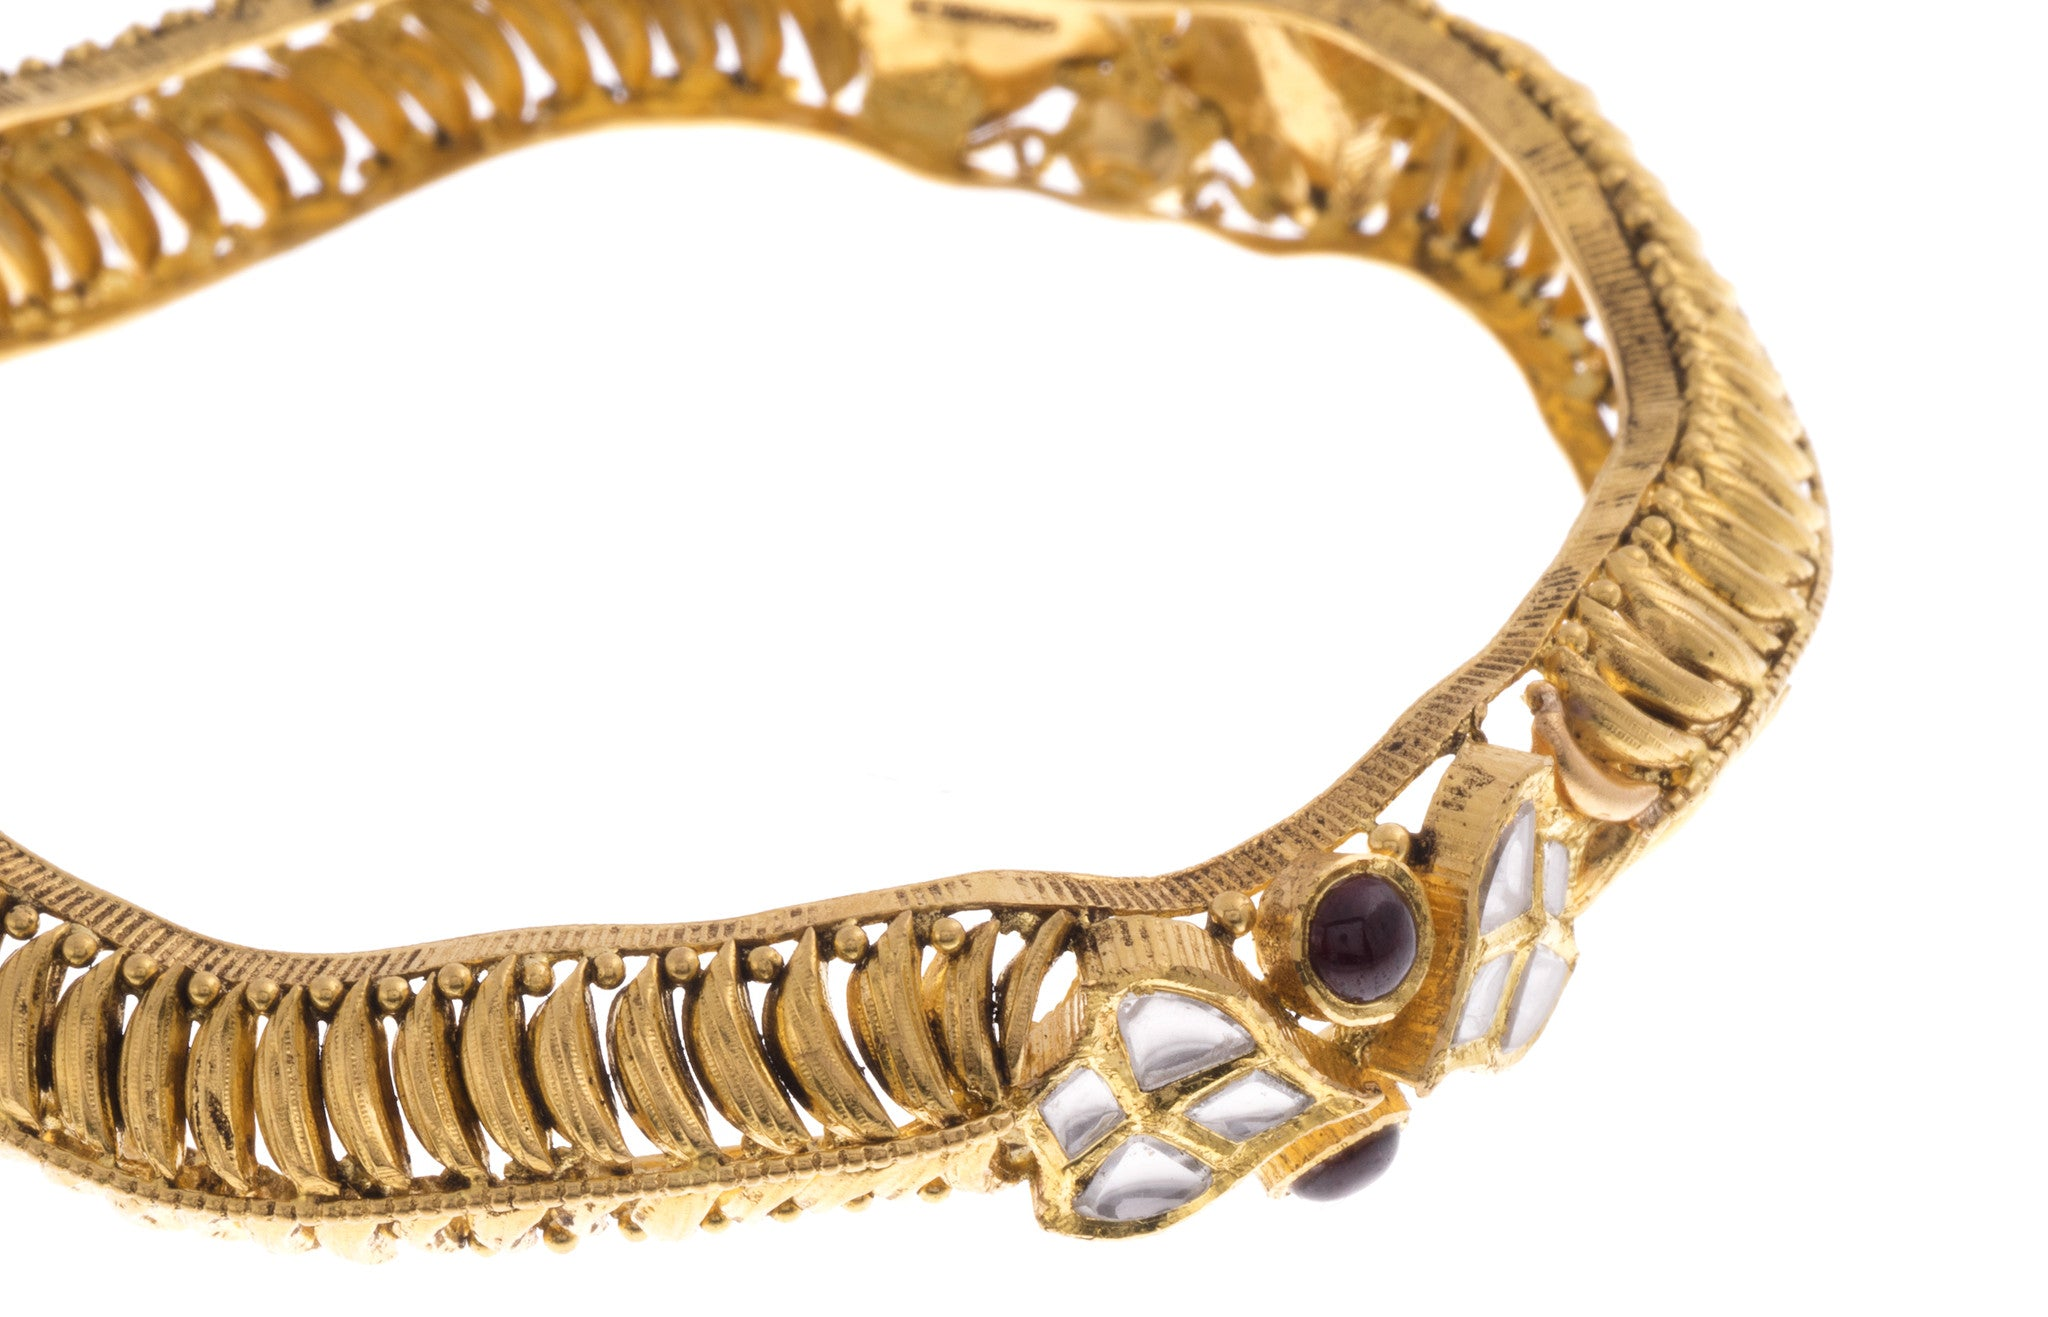 22ct Yellow Gold Antique Look Bangle with Synthetic Stones (G1753), Minar Jewellers - 8